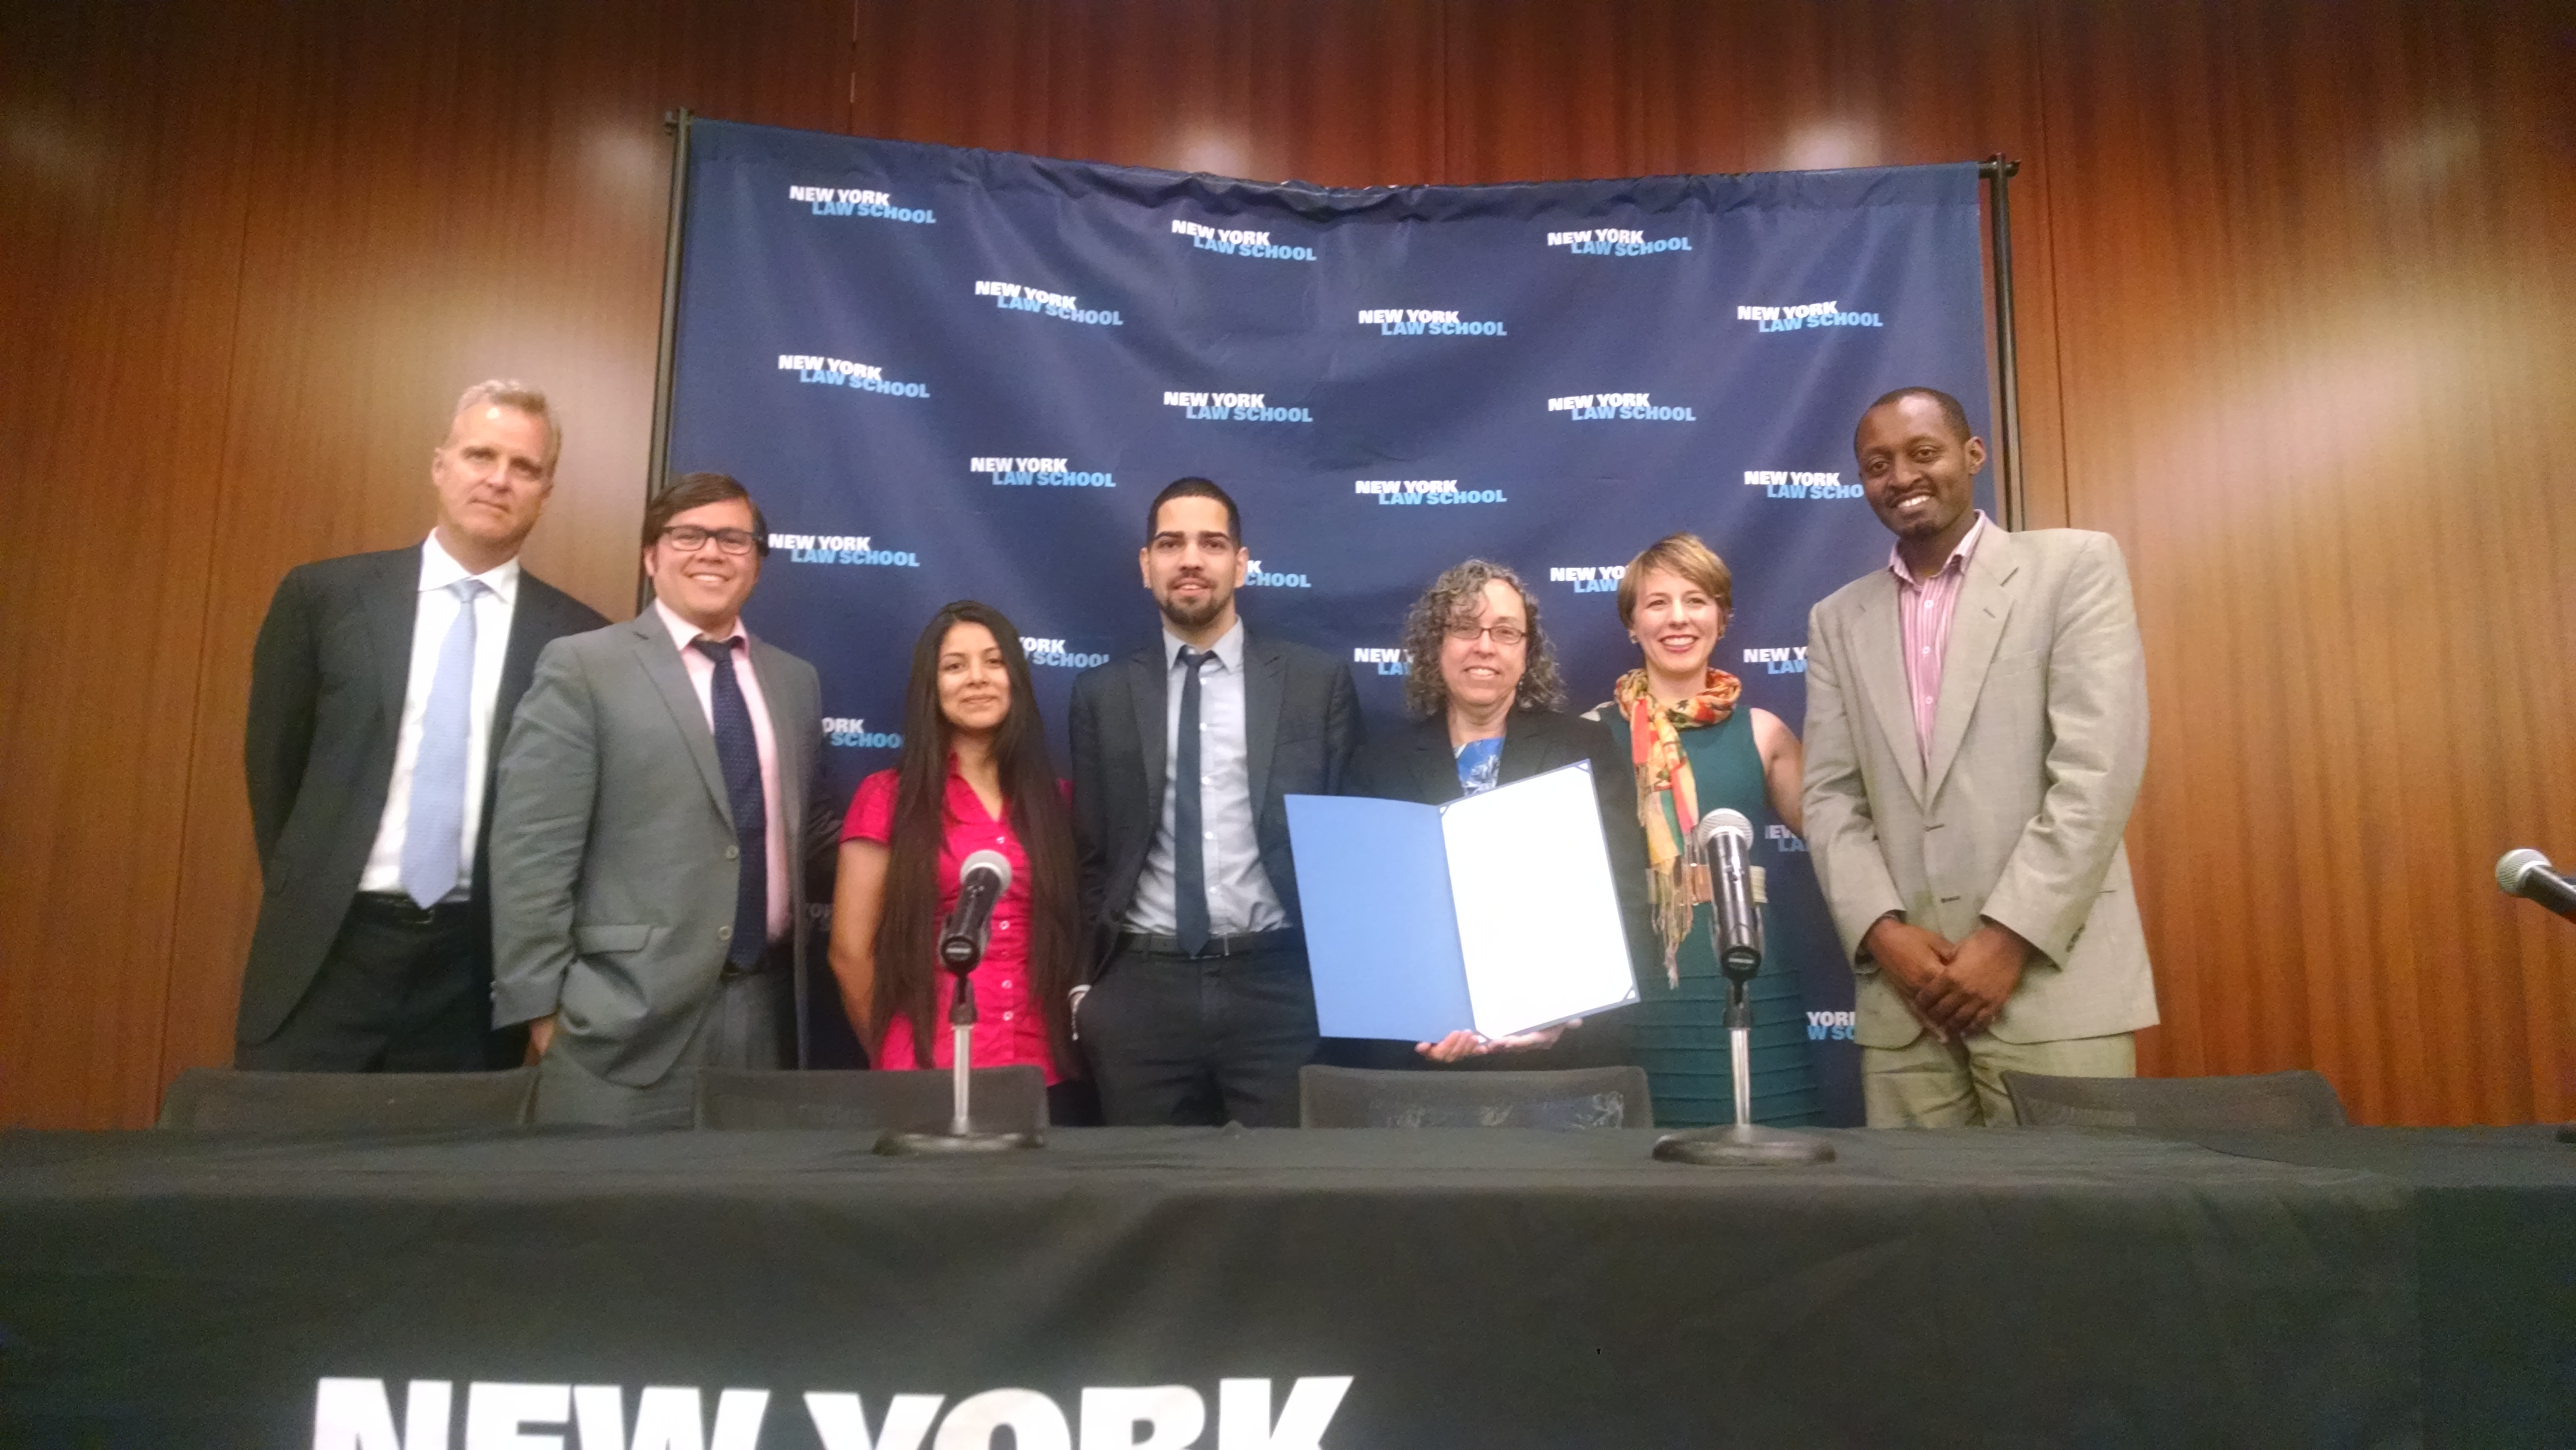 World Refugee Day Panels and Press Conference - Safe Passage